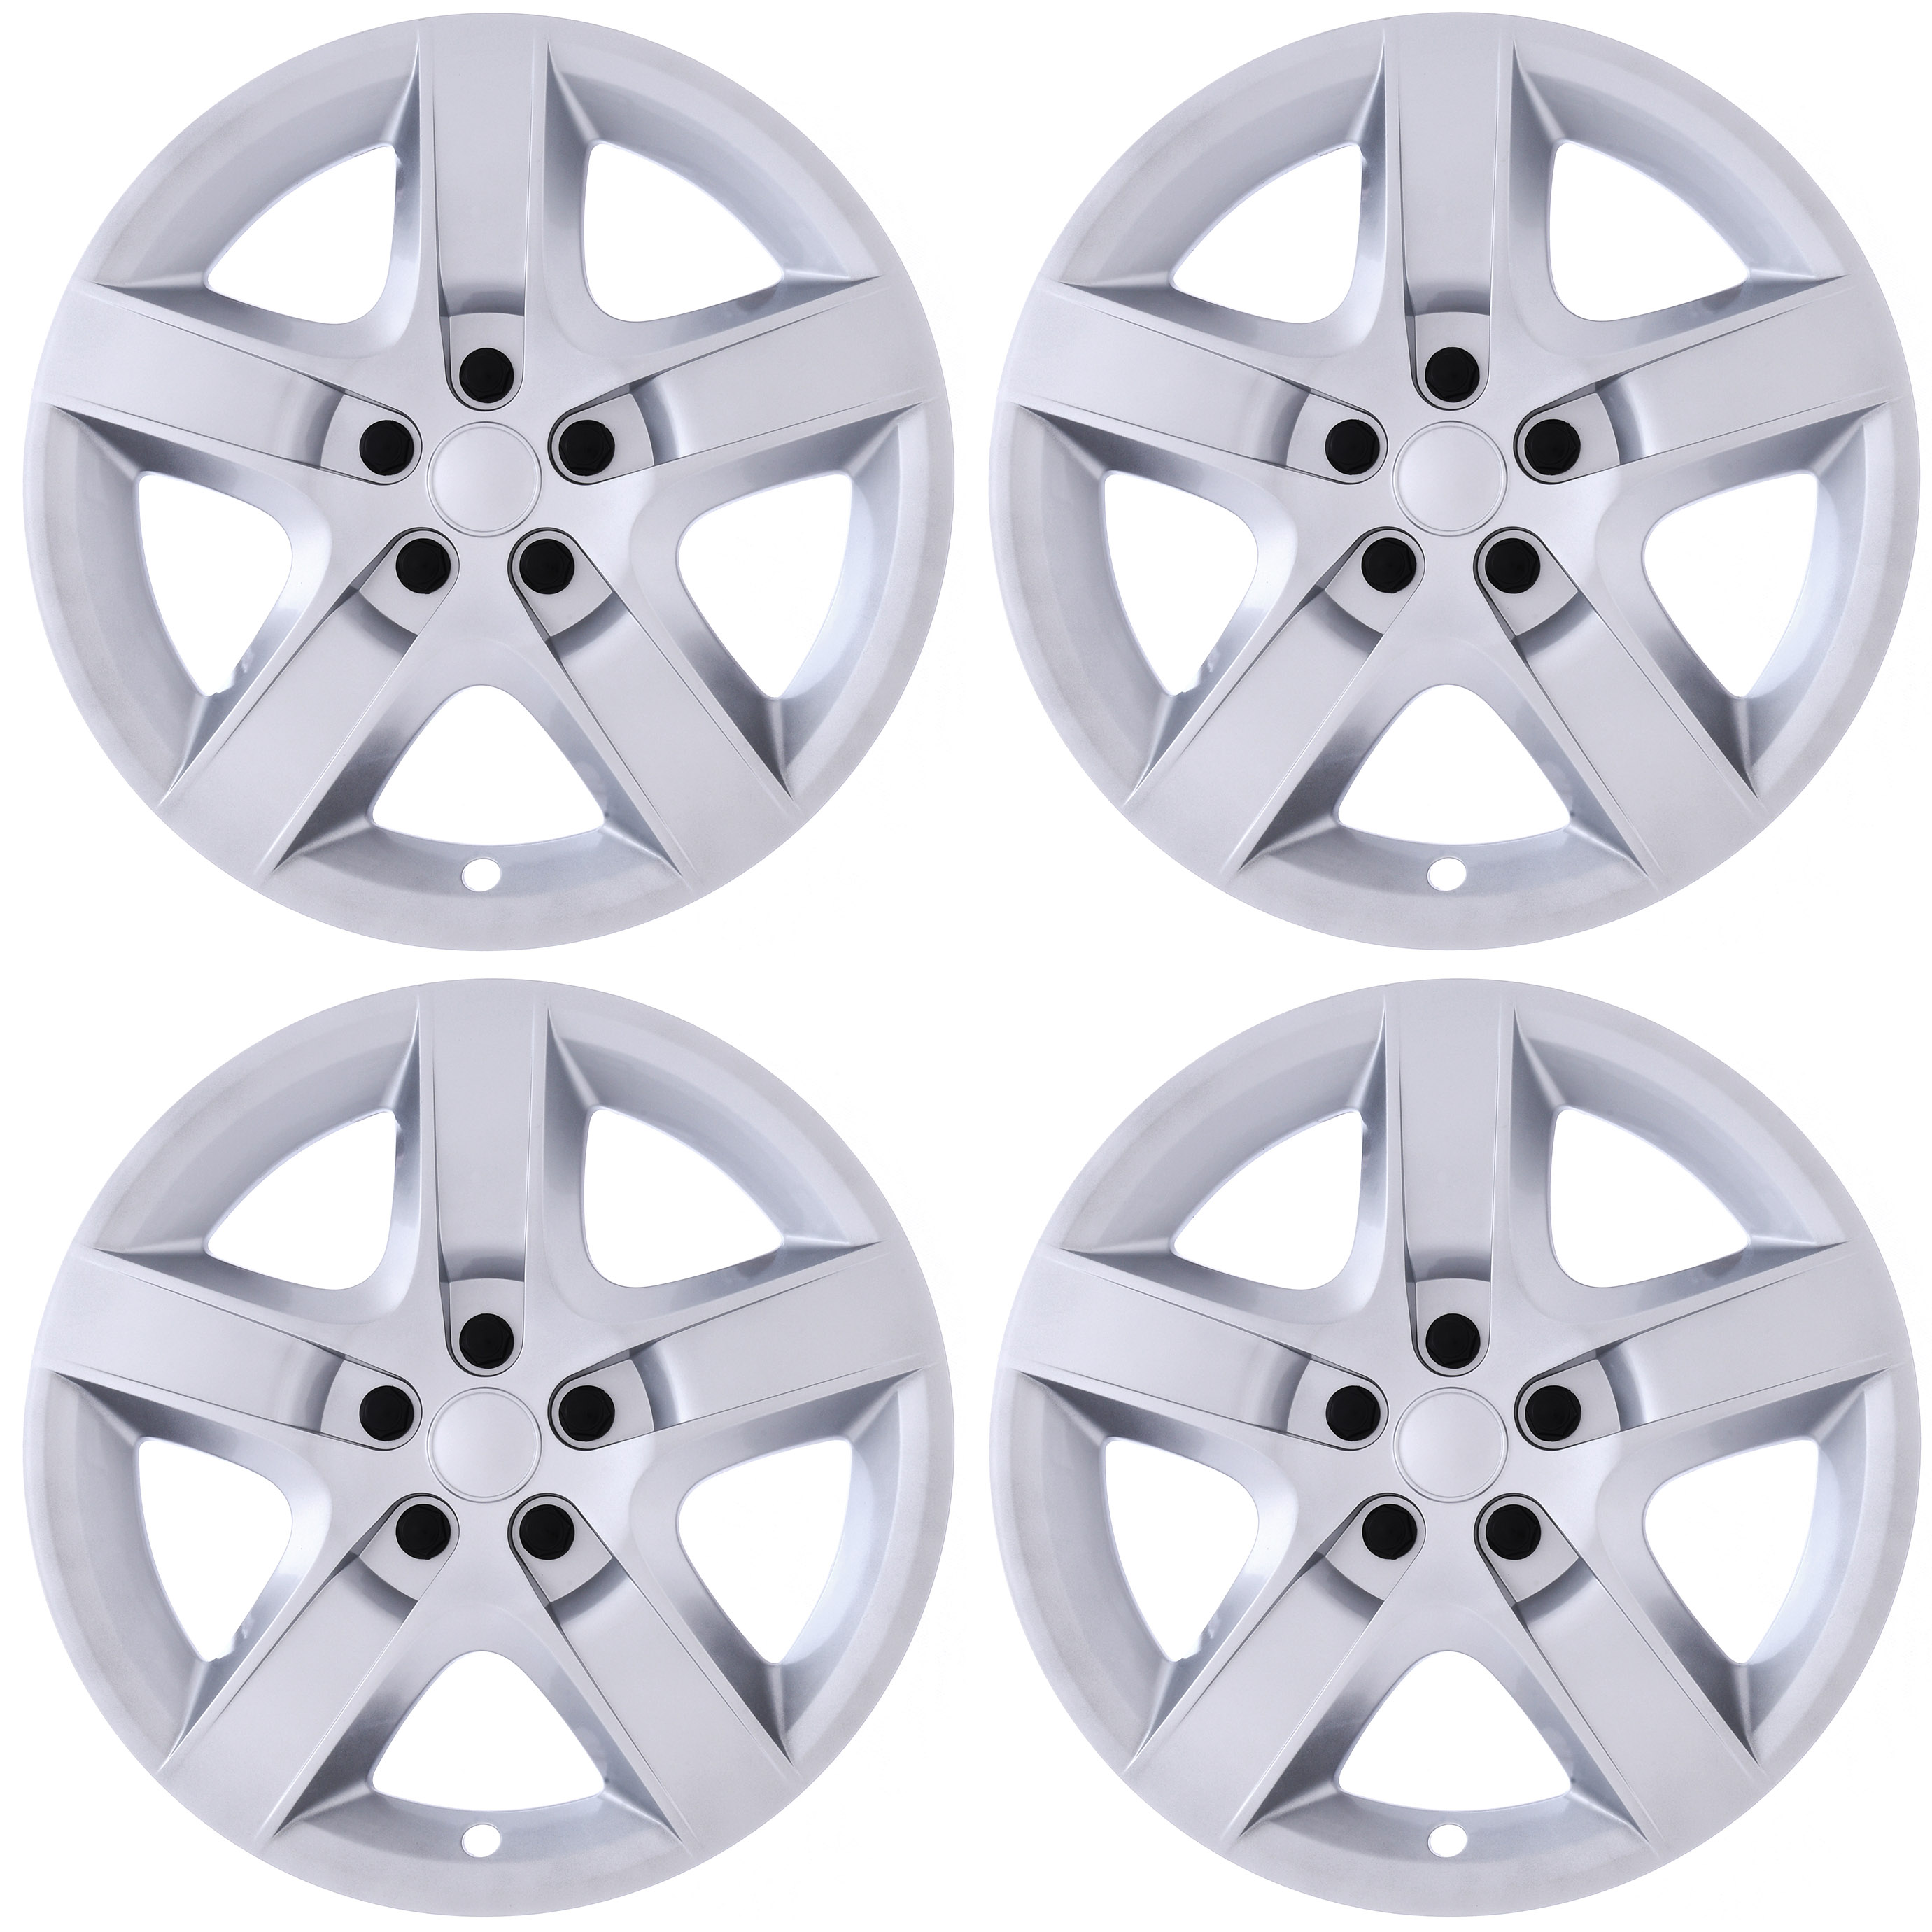 """Cover Trend (Set of 4) SILVER 17"""" Inch Hub Caps fits CHEVY MALIBU - 5 Spoke Aftermarket Chevrolet Wheel Covers"""